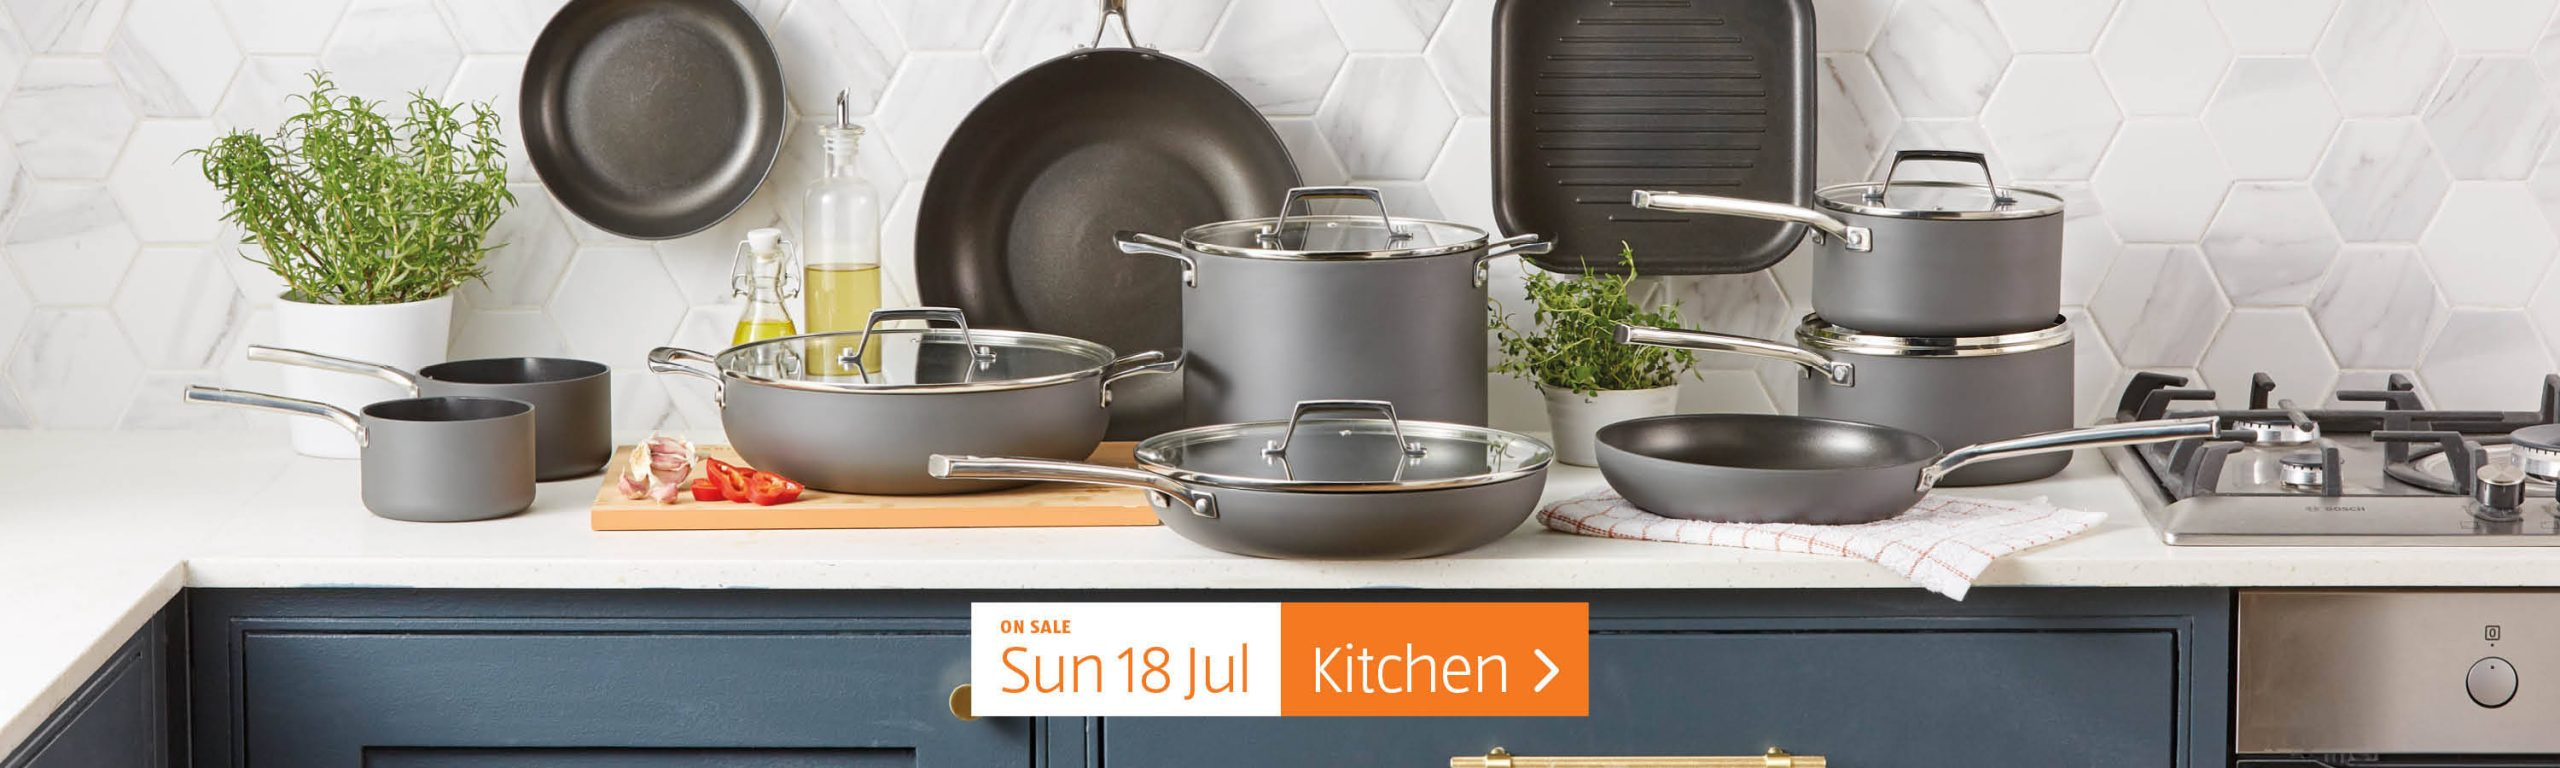 Aldi Special Buys Sunday, 18th July 2021 Kitchen